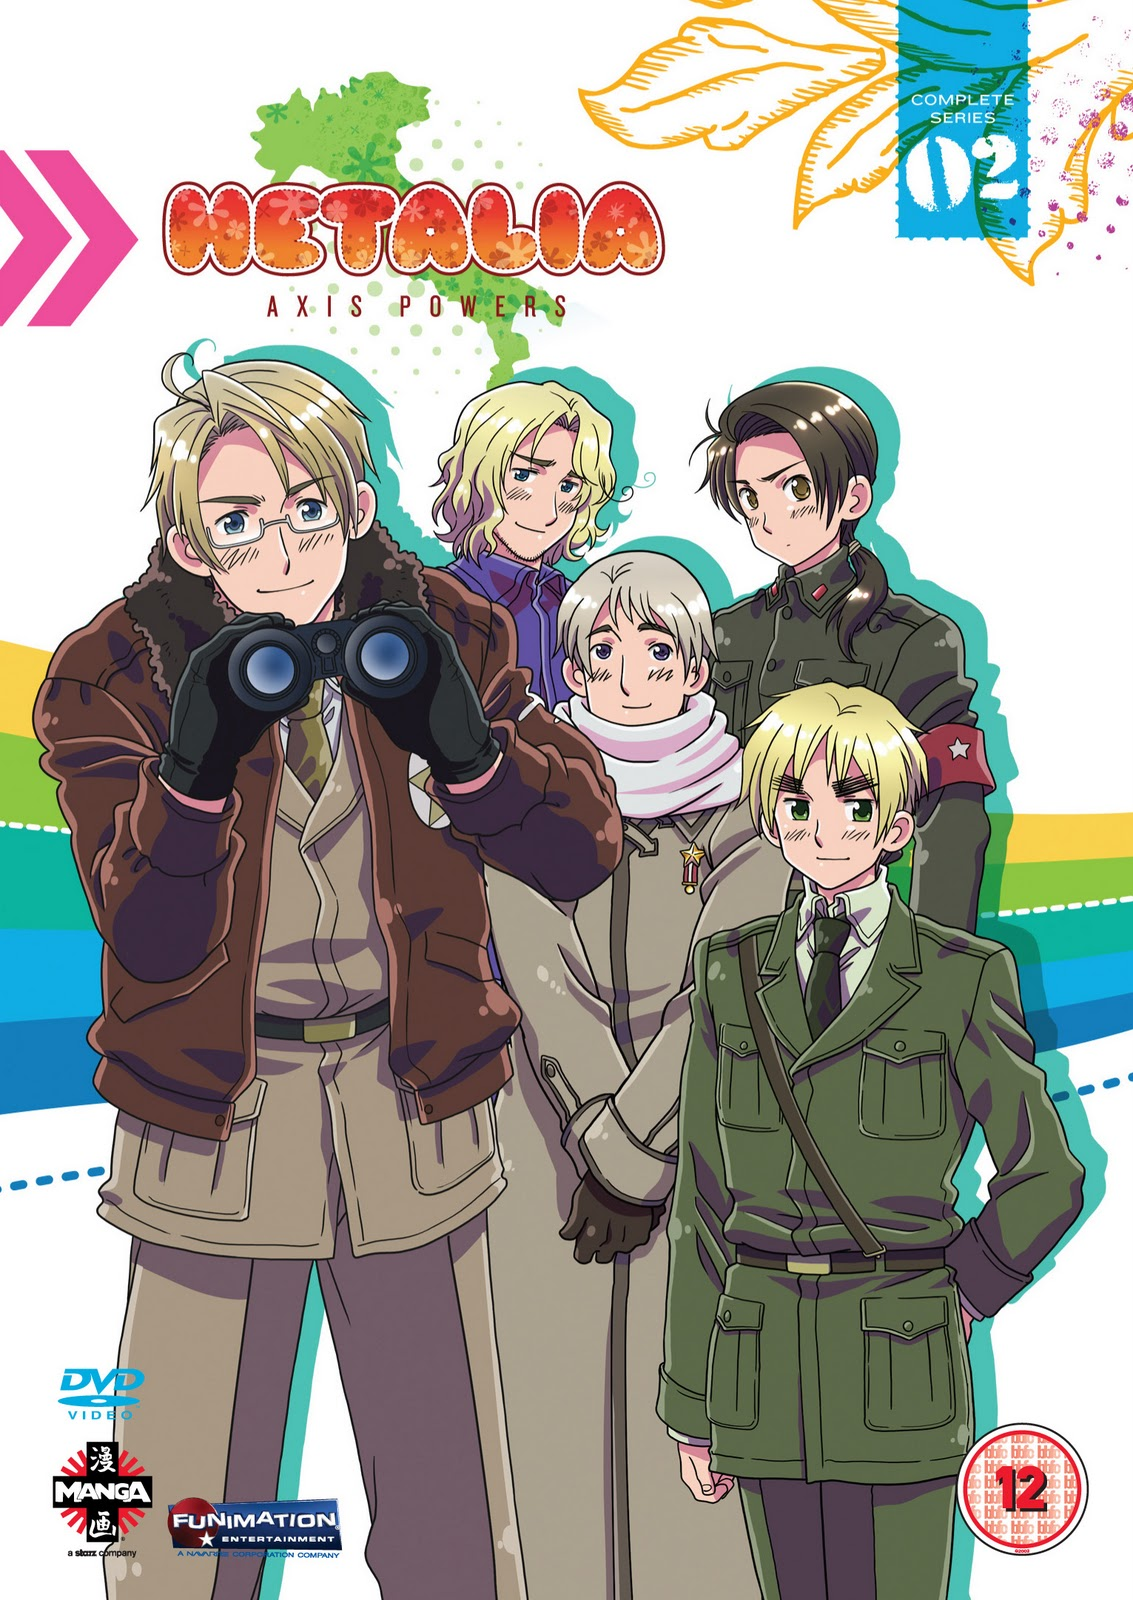 Hetalia axis powers complete series 2 uk dvd the incredibly hetalia axis powers complete series 2 uk dvd publicscrutiny Images